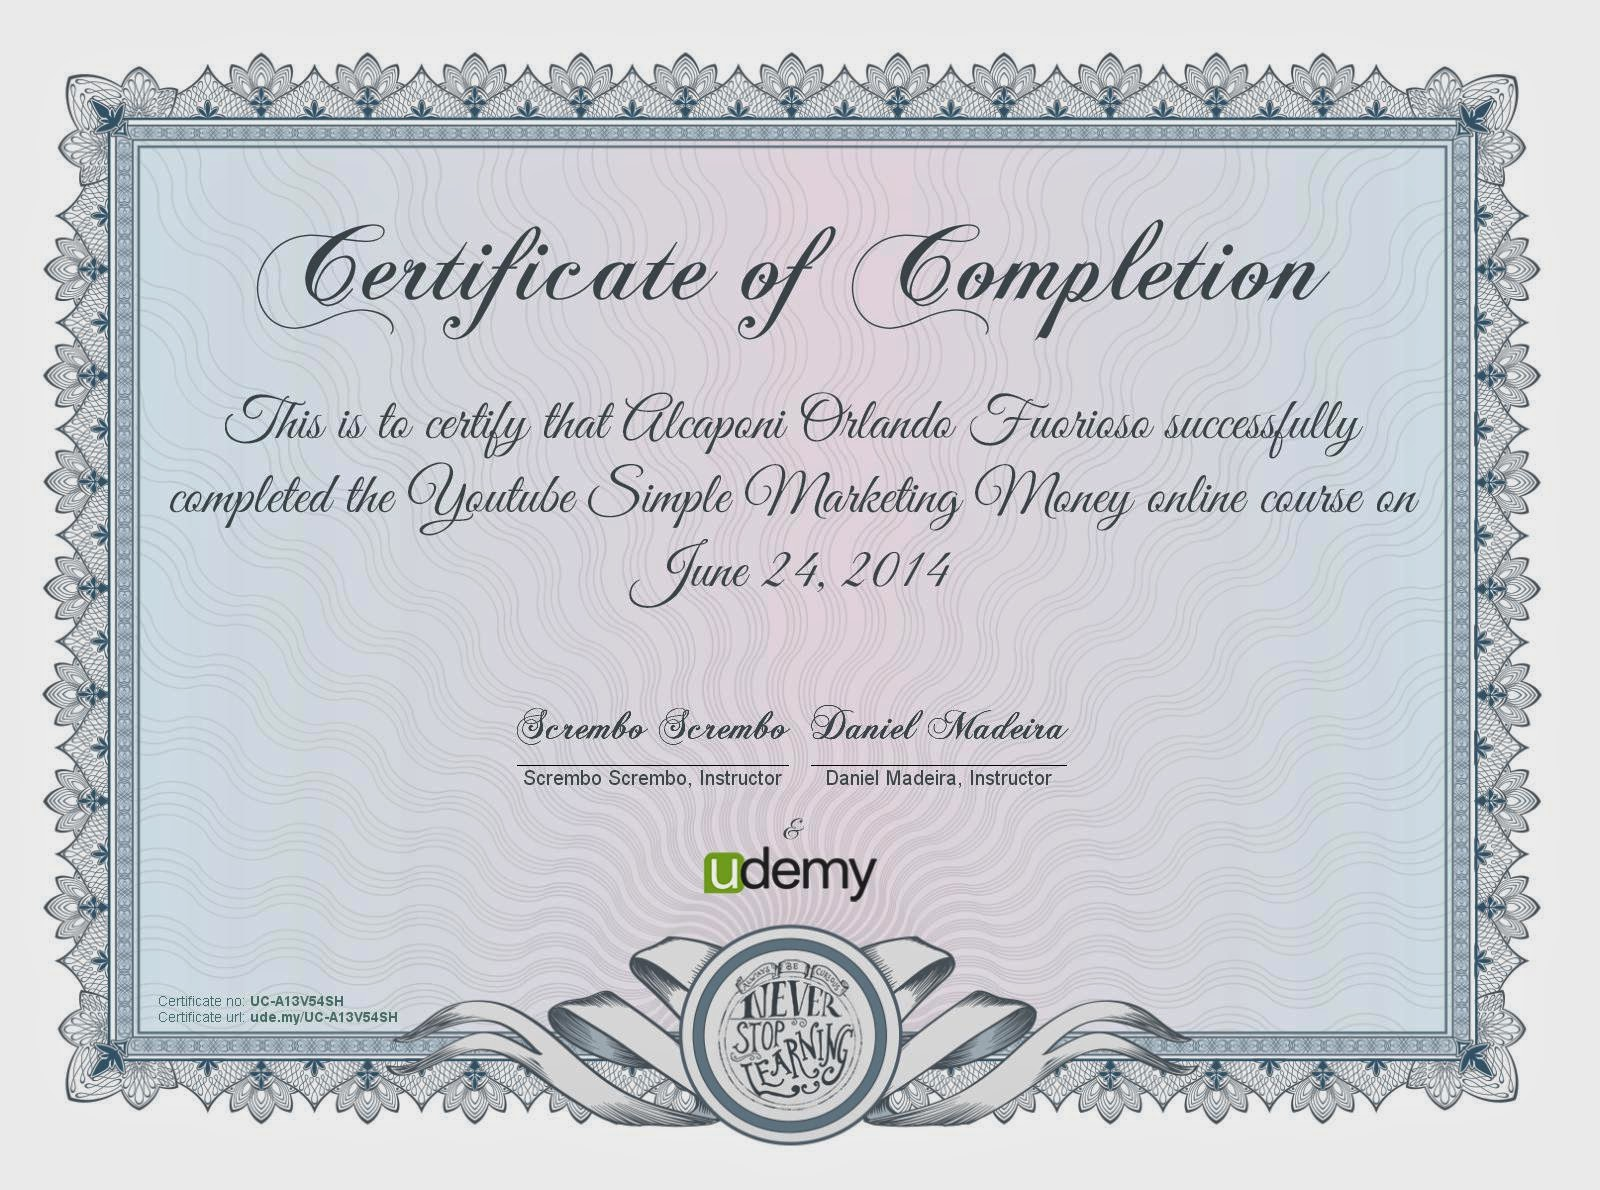 udemy certificate make money with youtube